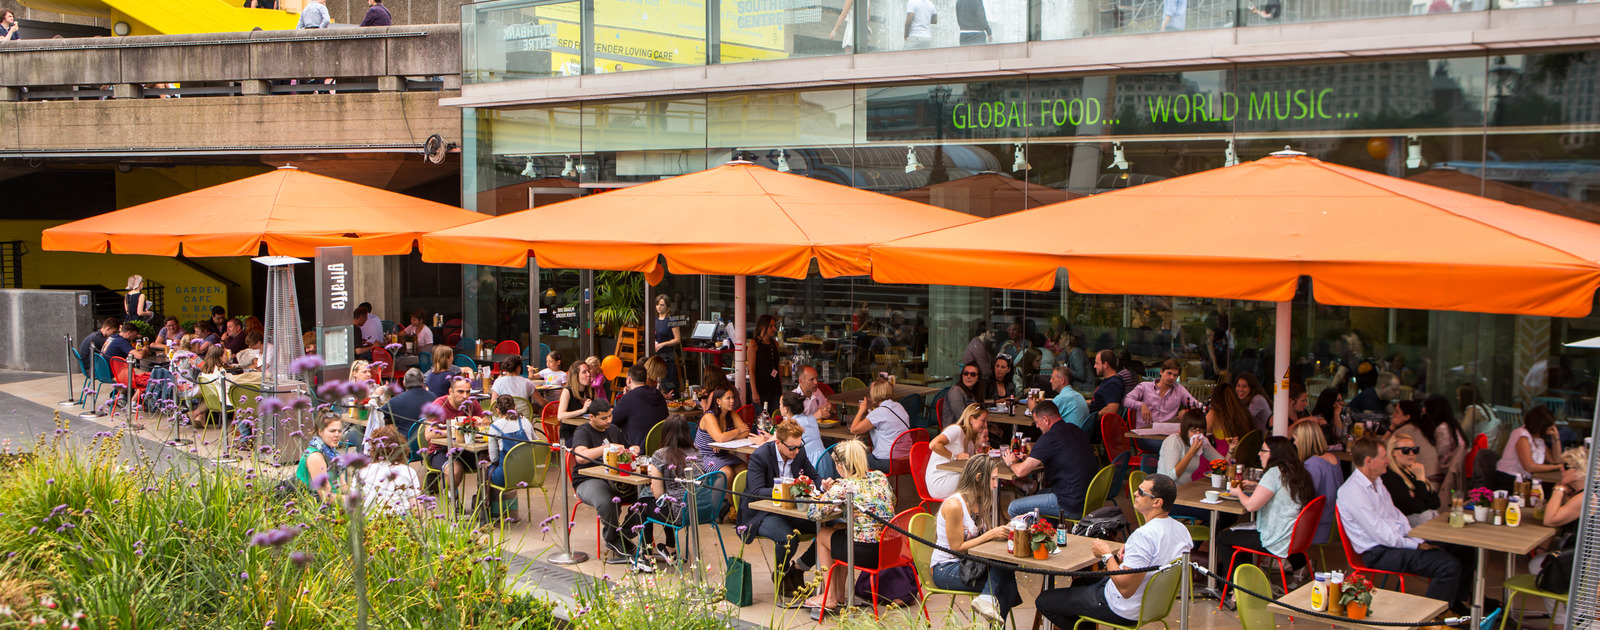 Exterior view of Giraffe restaurant at the Southbank Centre